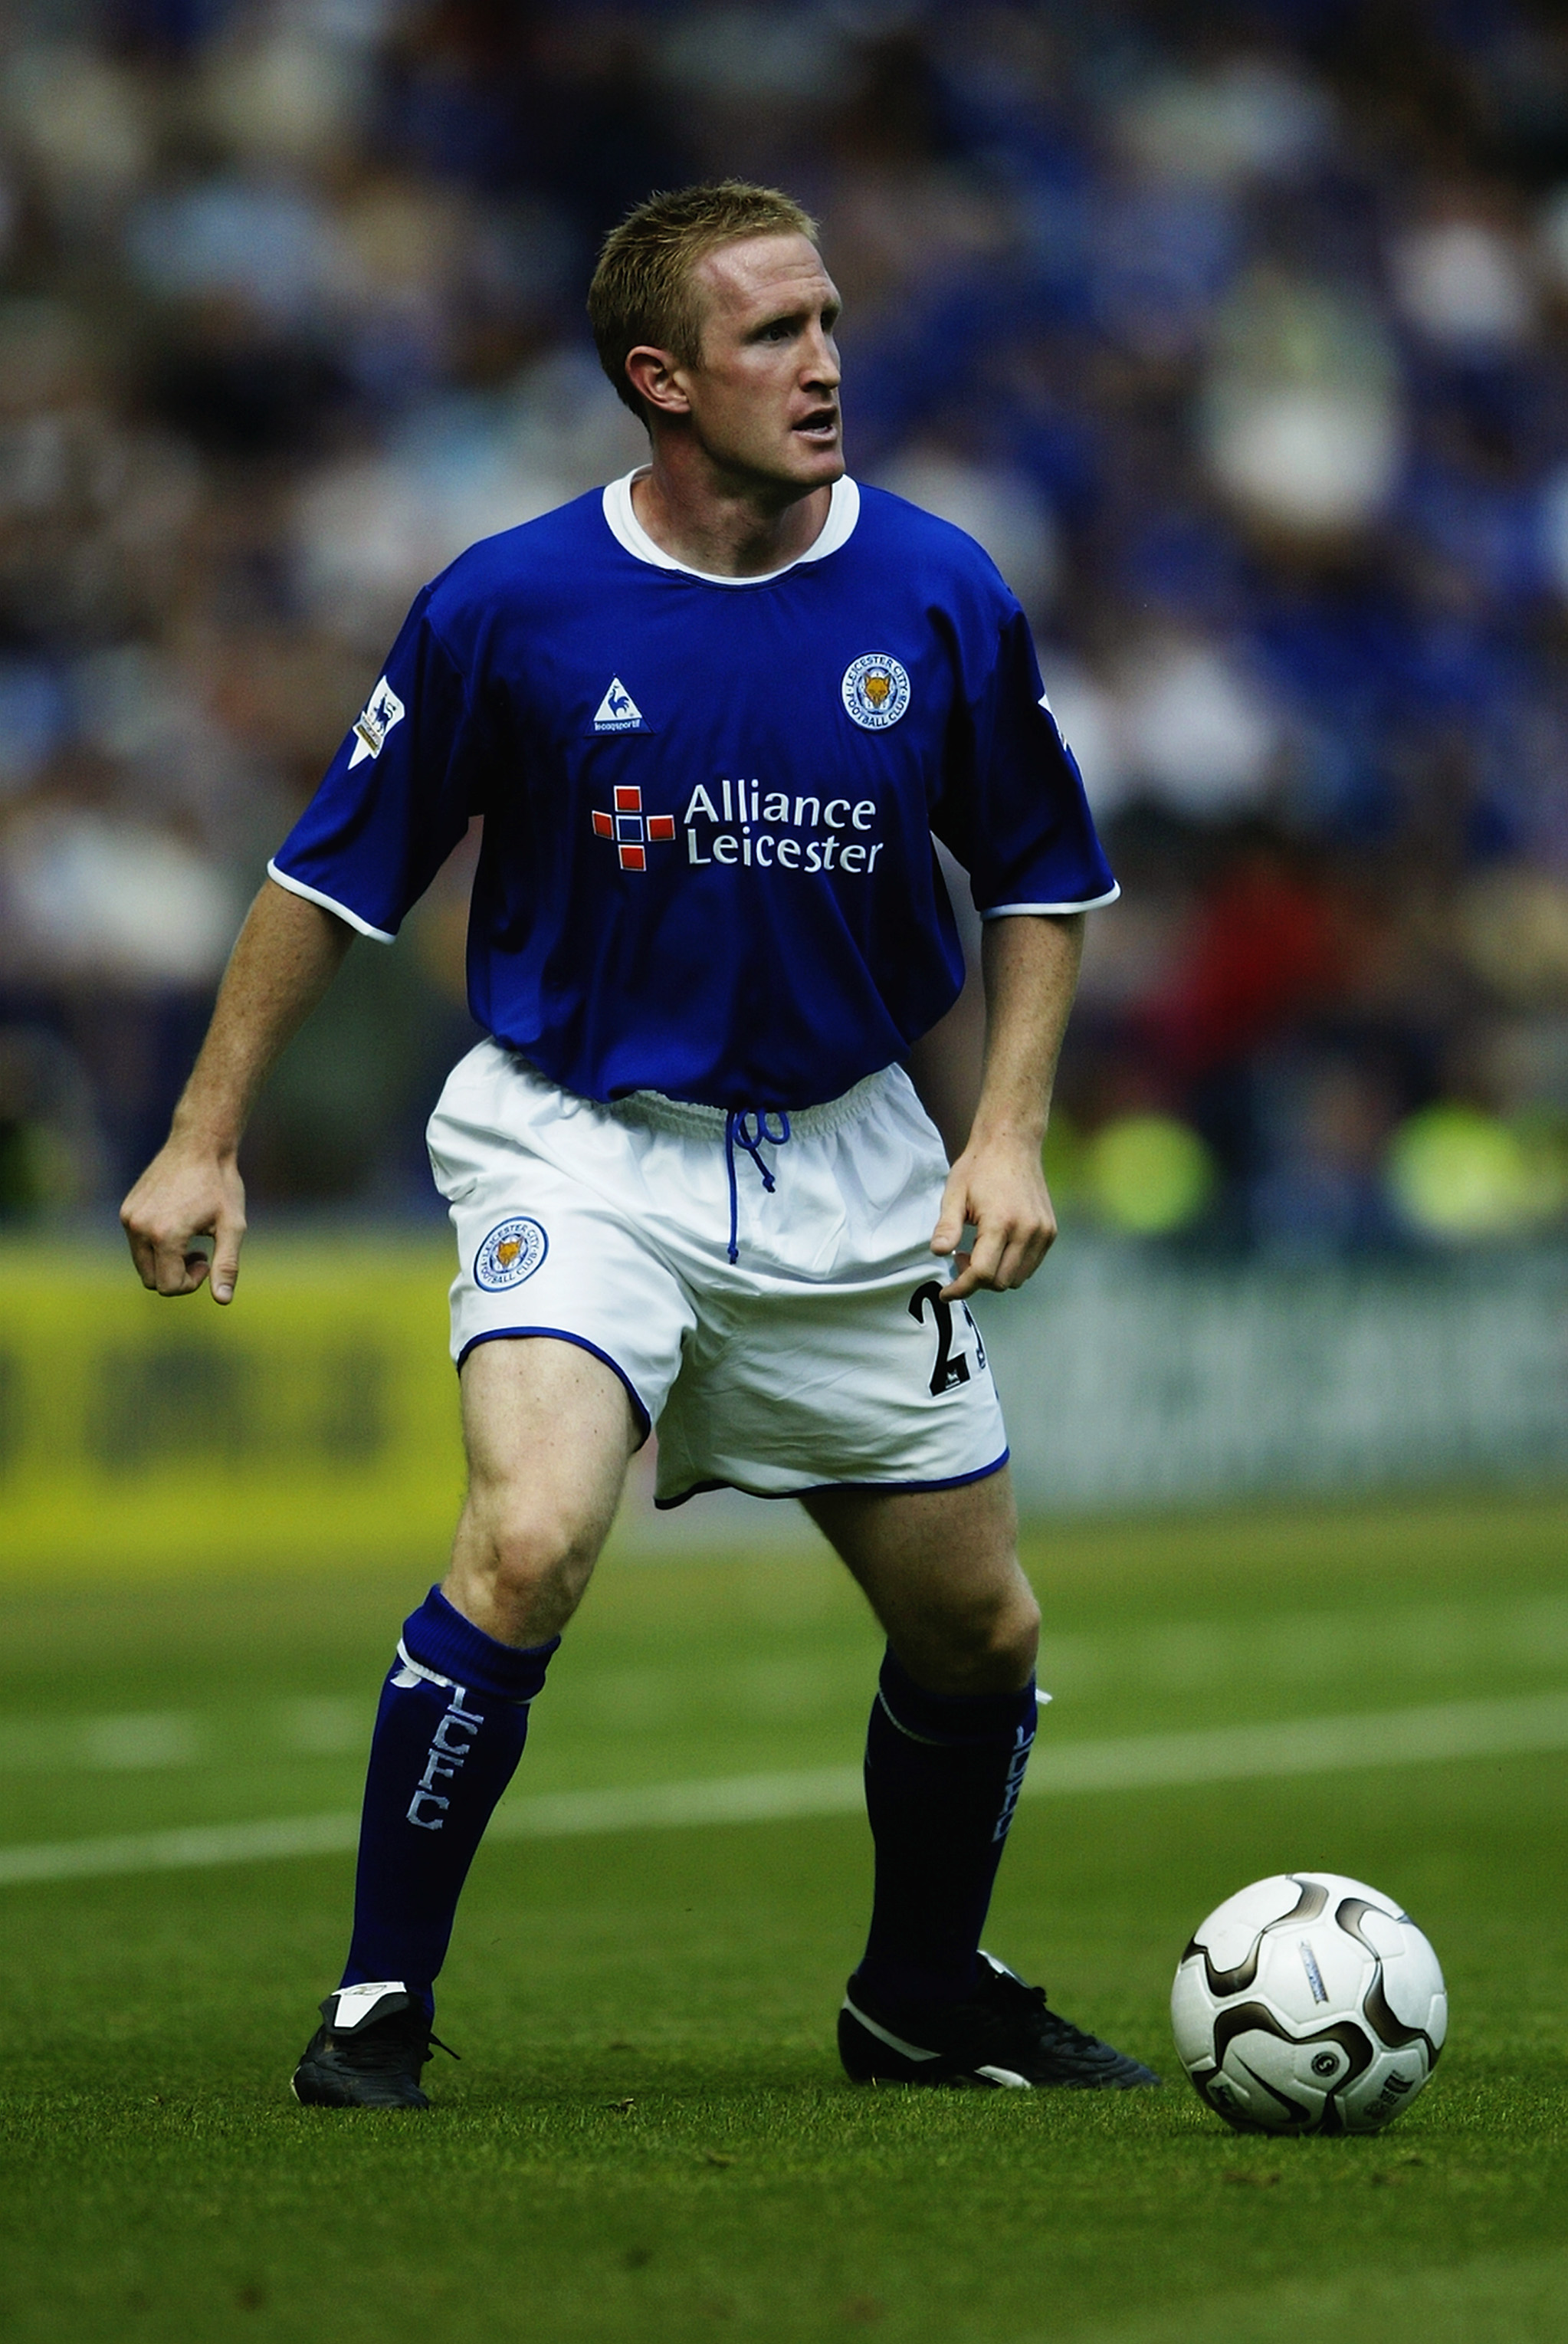 John Curtis Playing for Leicester City FC